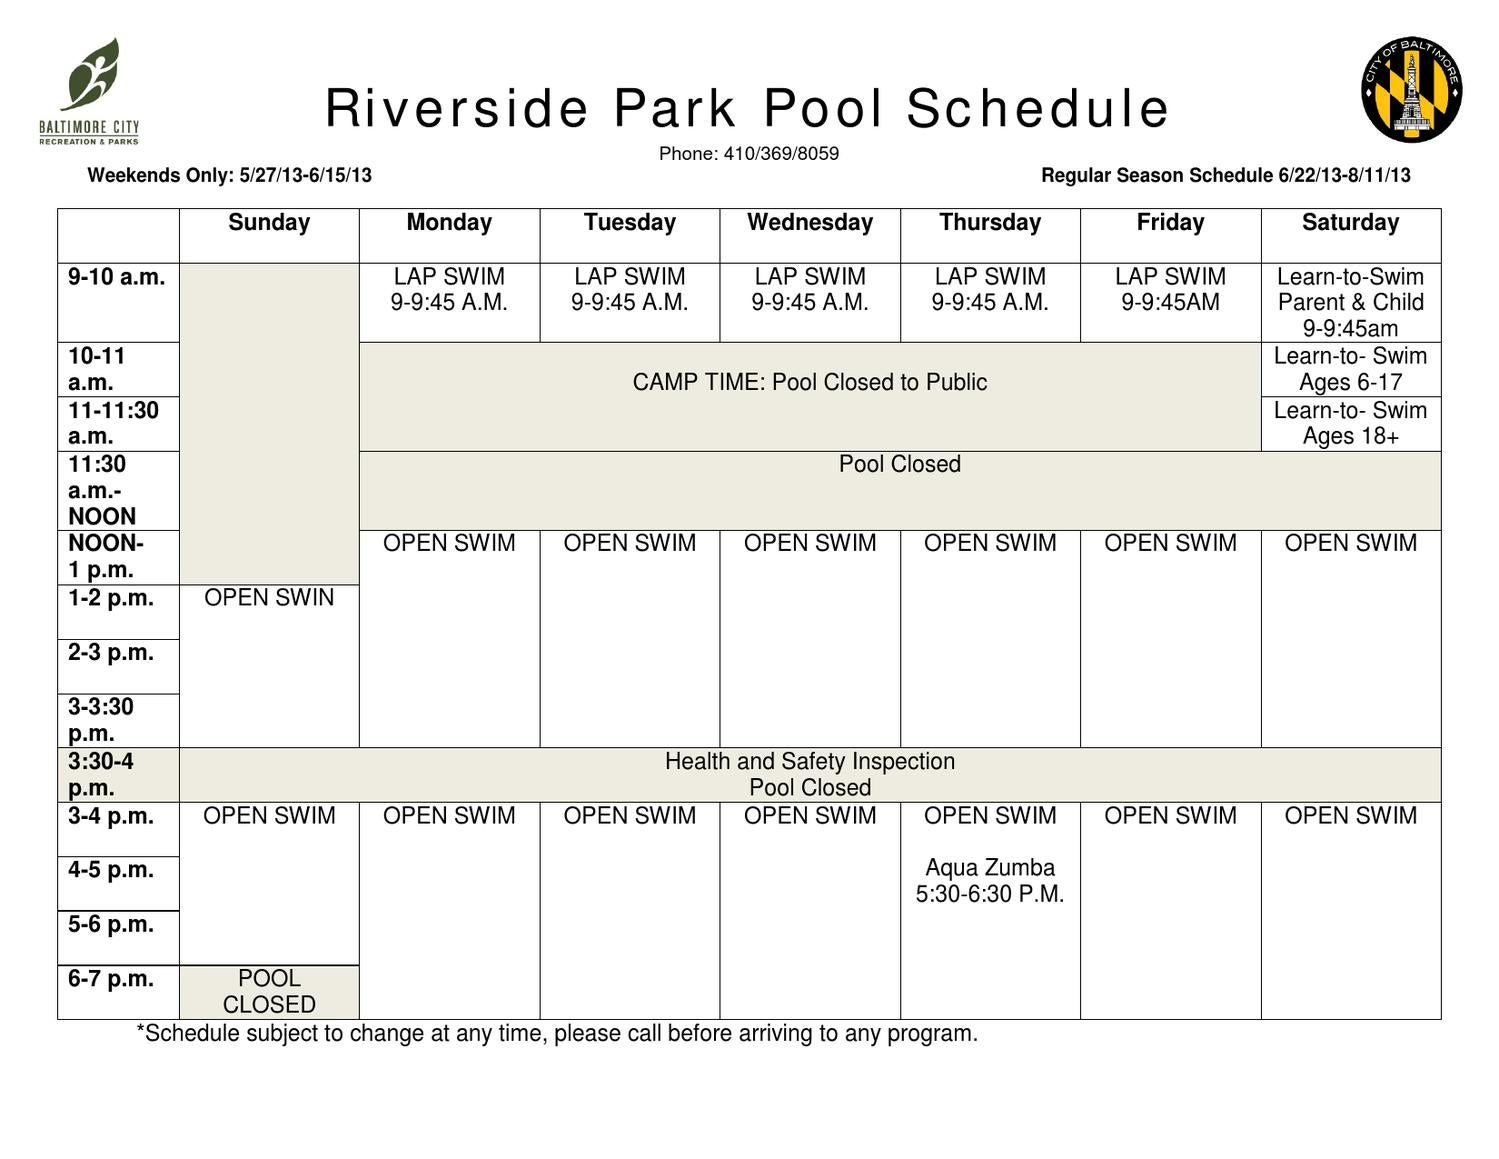 Riverside park pool schedule by baltimore city recreation - River park swimming pool schedule ...